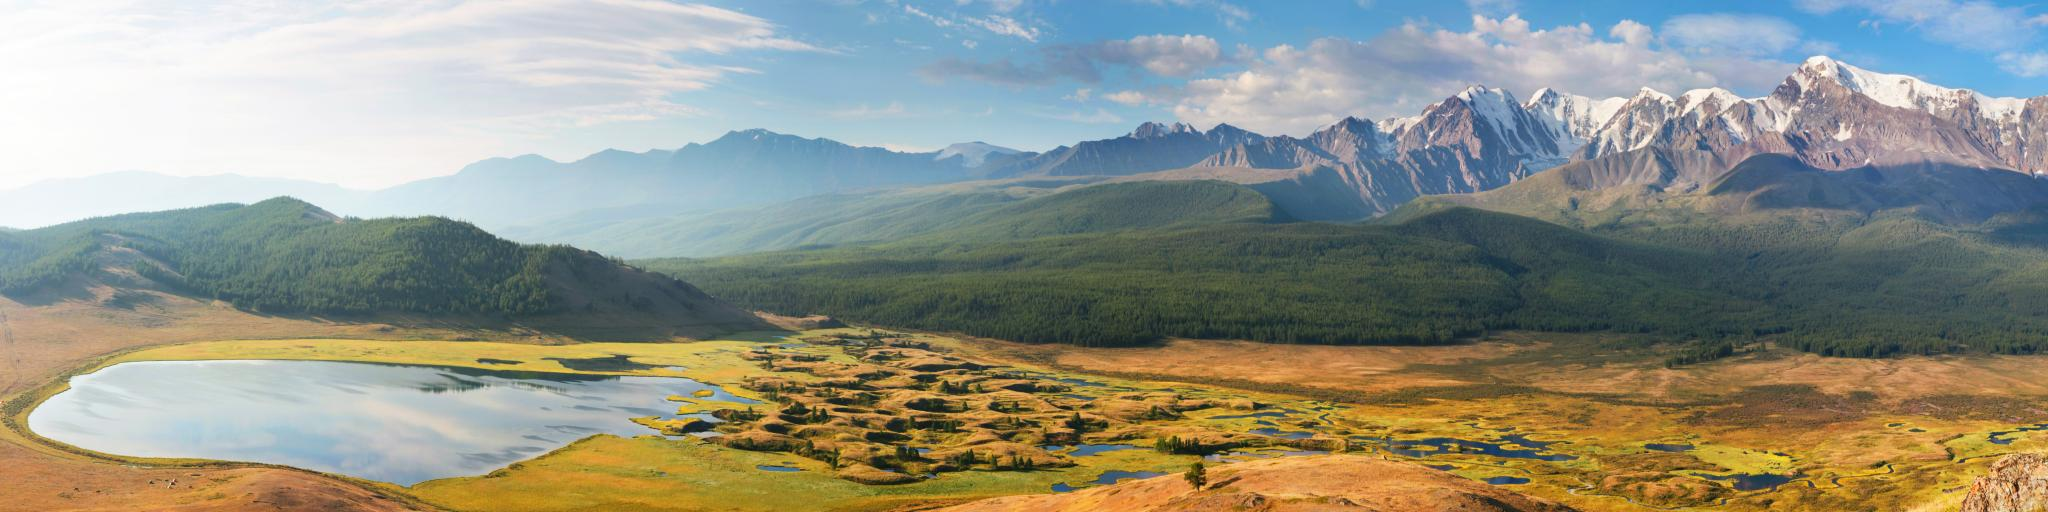 Altai mountains in Siberia in Russia along the drive from Moscow to Vladivostok.